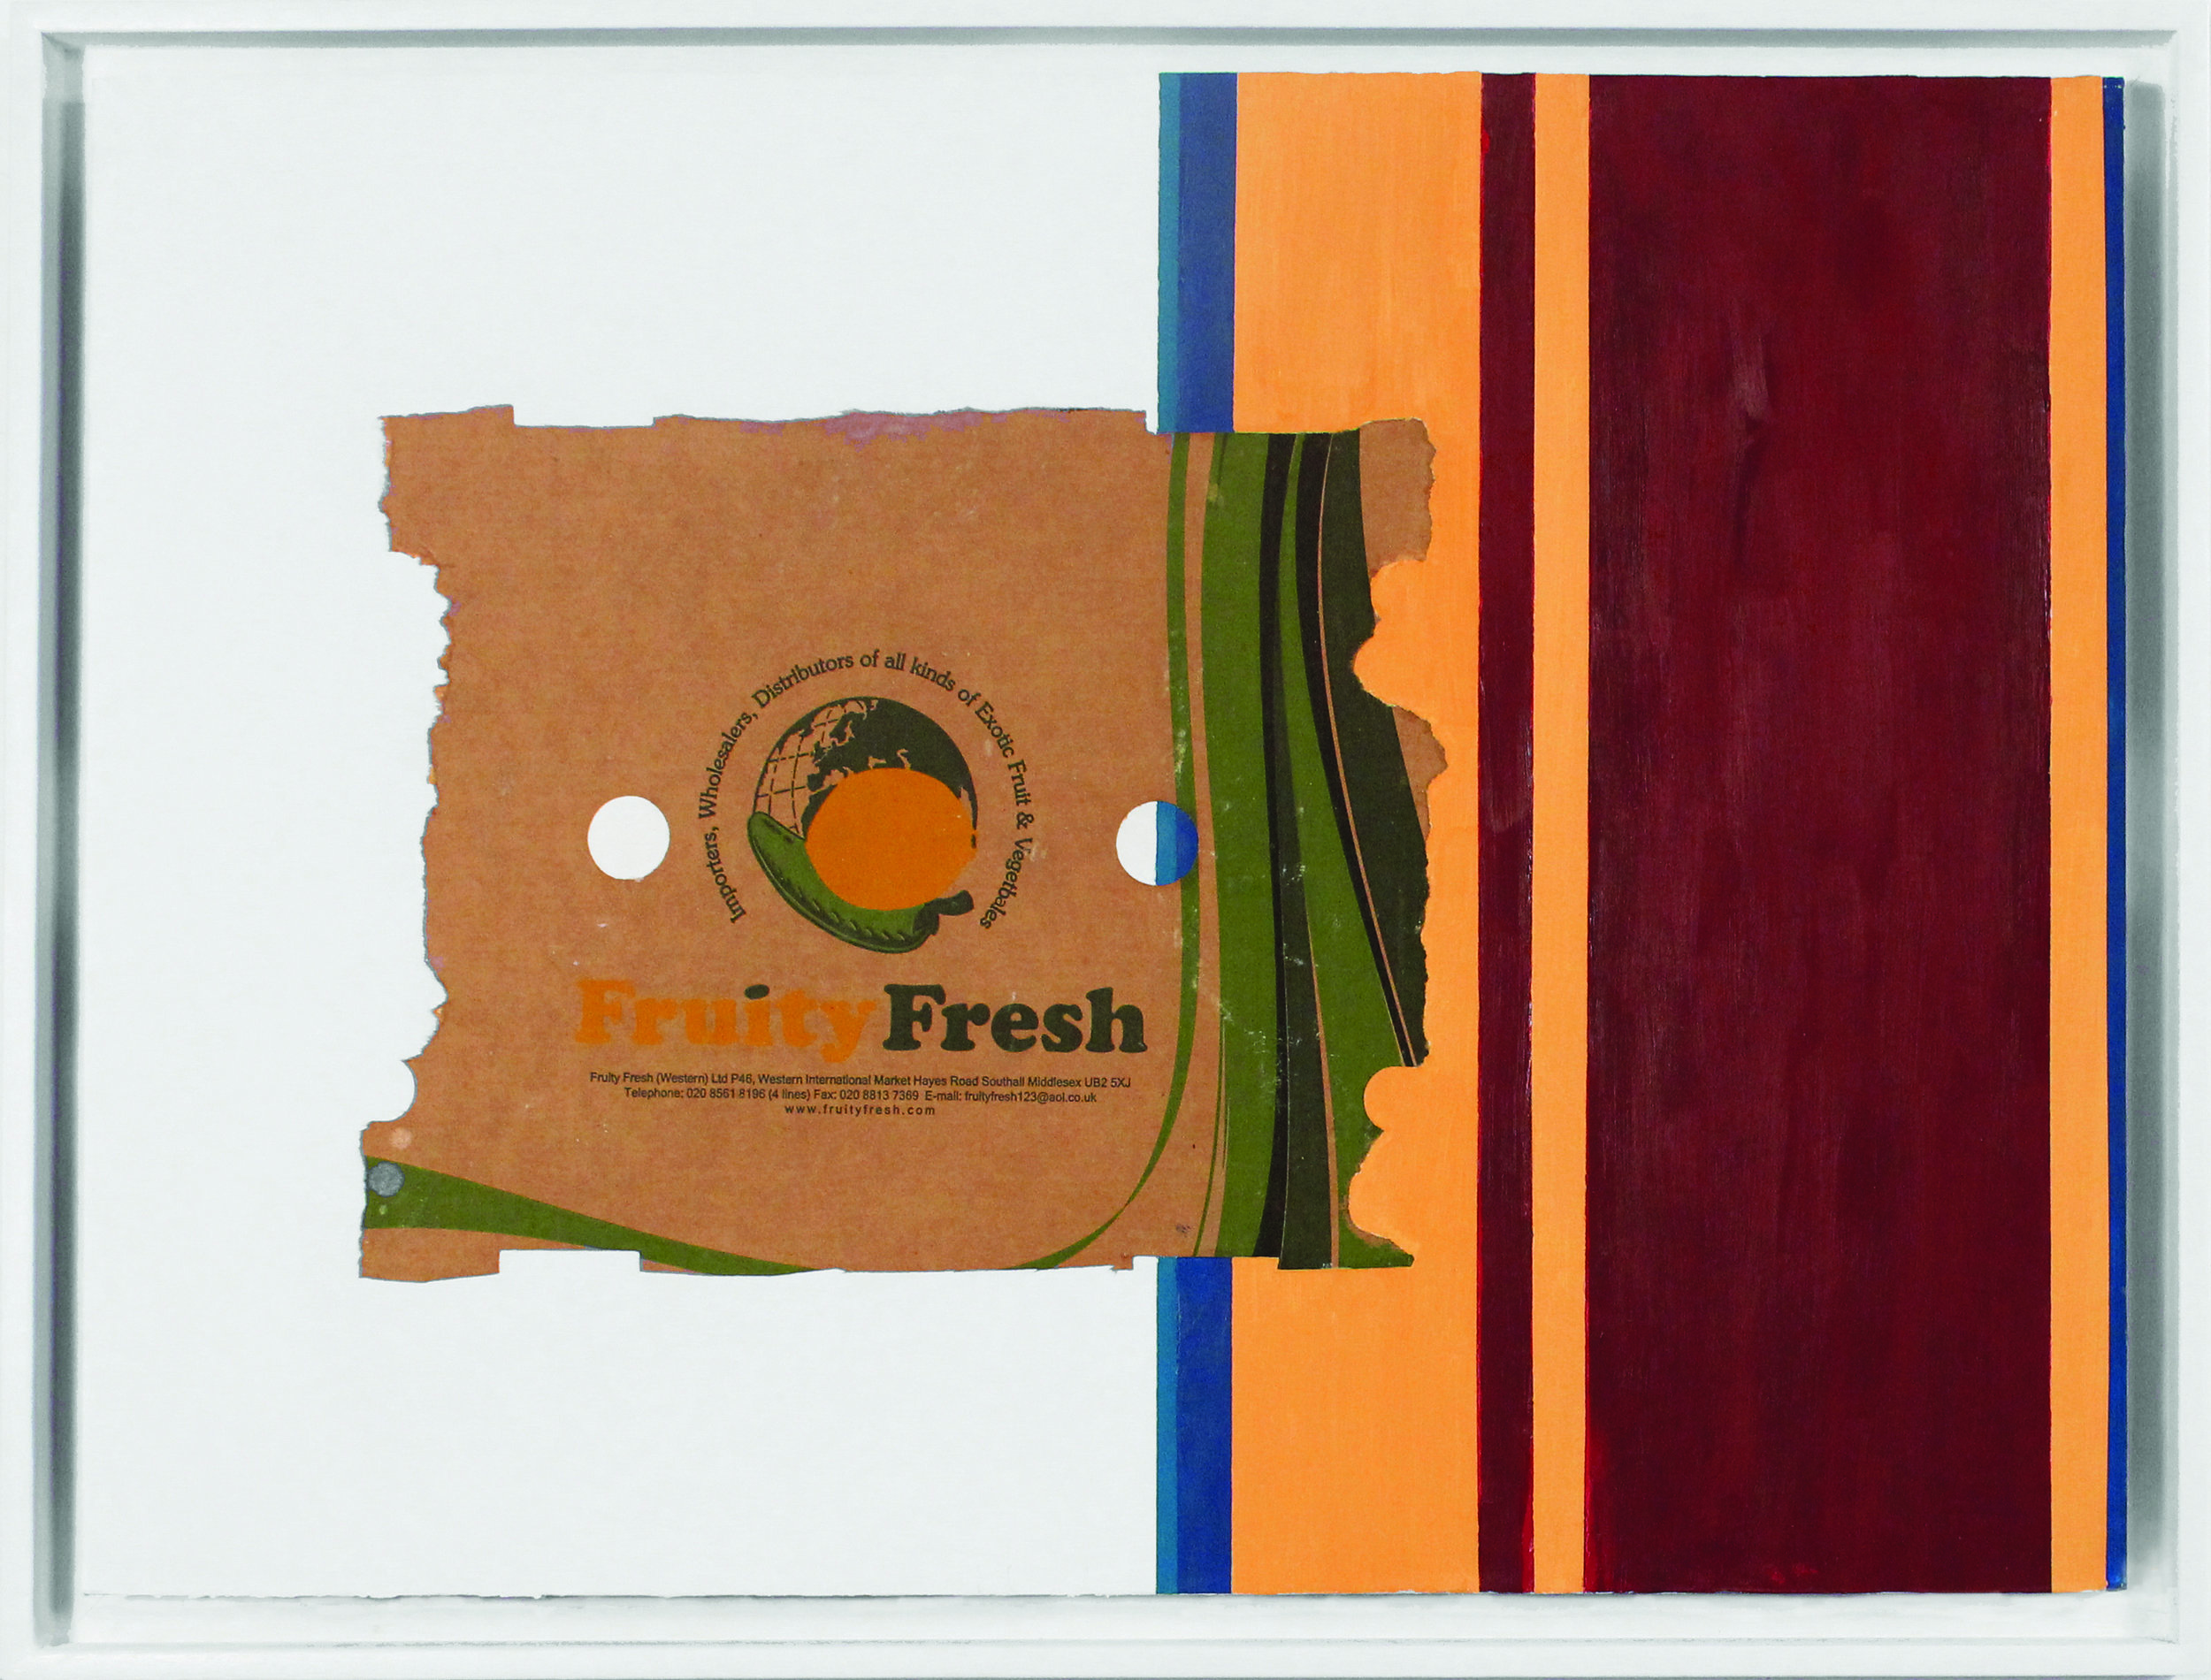 Fruity Fresh  2013, found cardboard box fragment and oil paint over wallpaper on paper, 570 x 760mm.